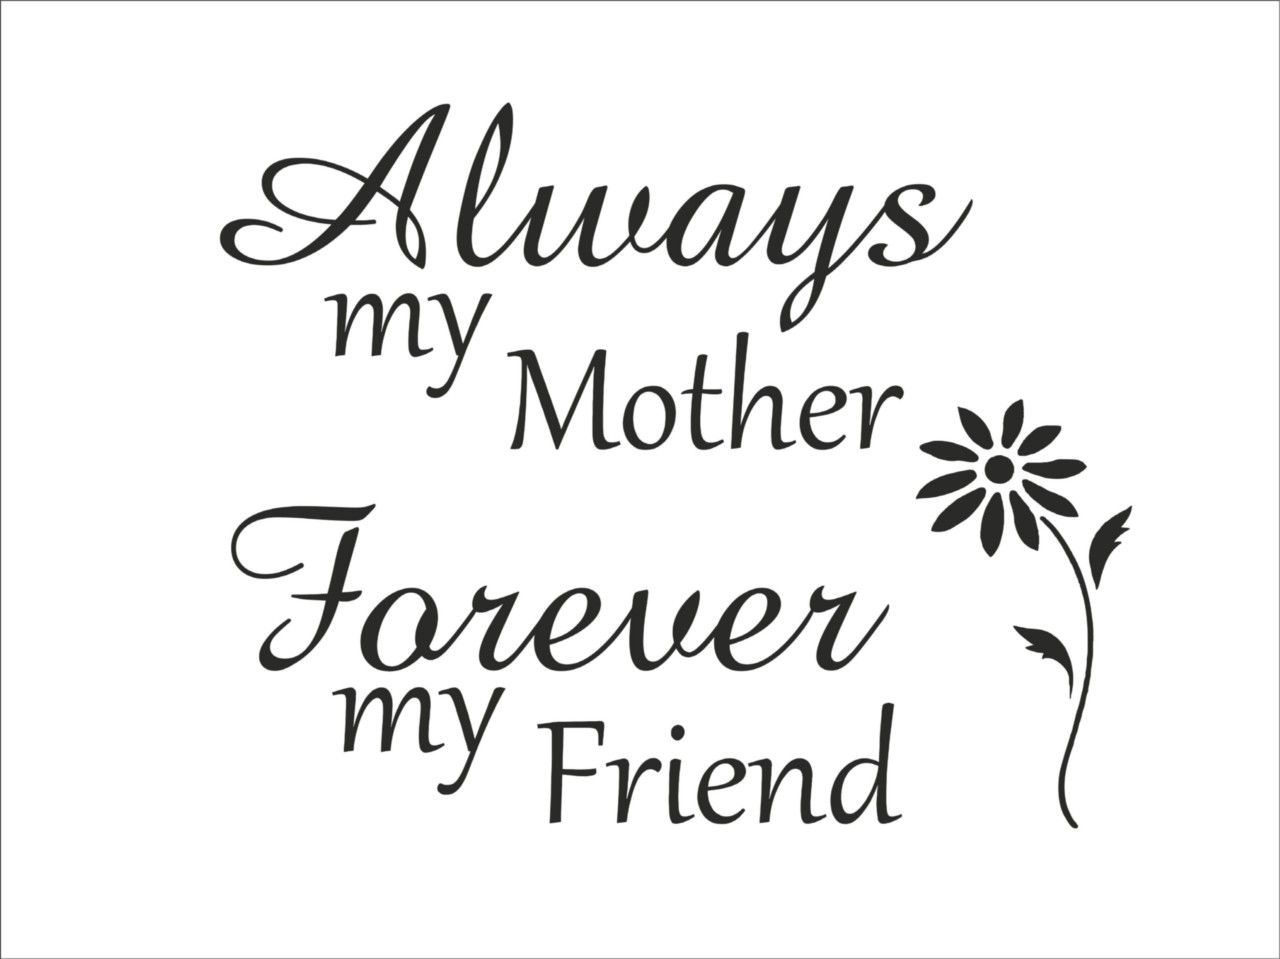 Download free 23 Quotes About Mother On Special Day - The Quotes ...